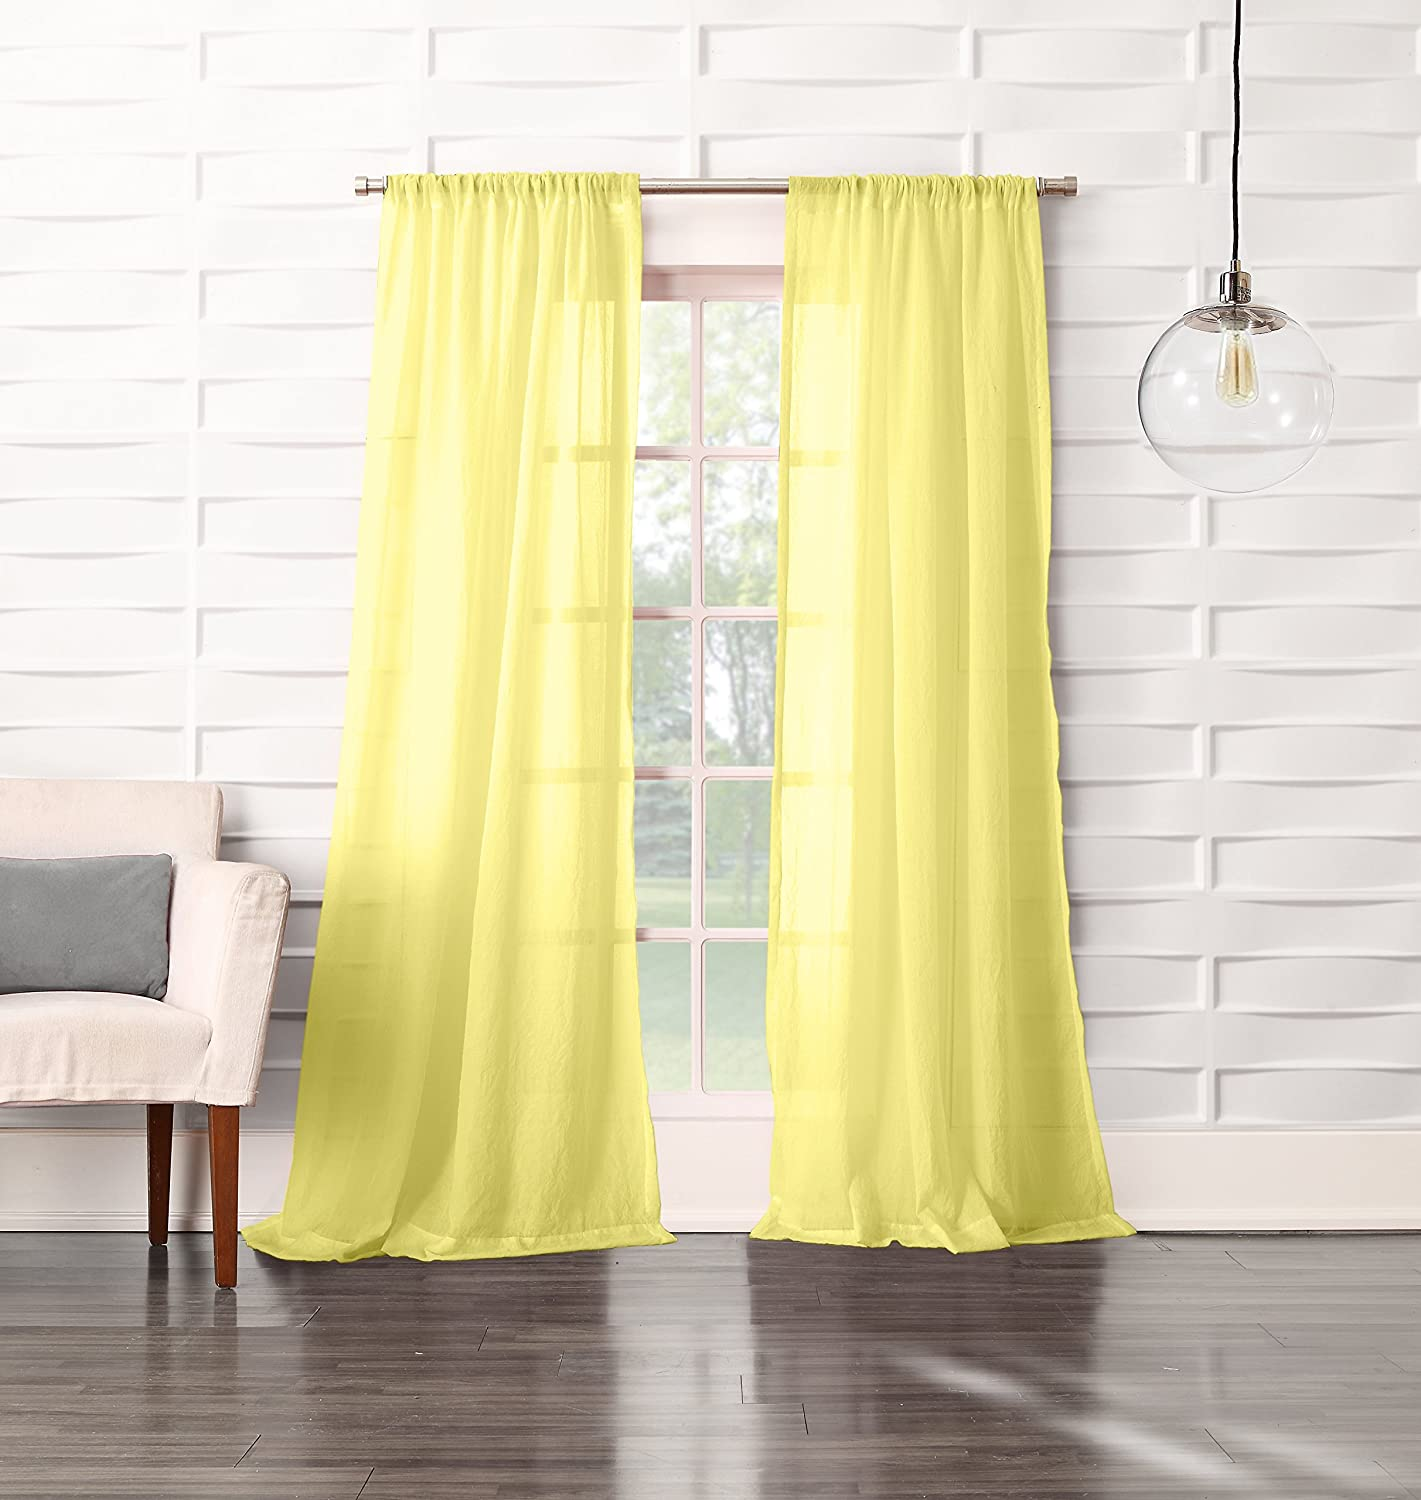 No. 918 Tayla Crushed Sheer Voile Rod Pocket Curtain Citrine Yellow Panel